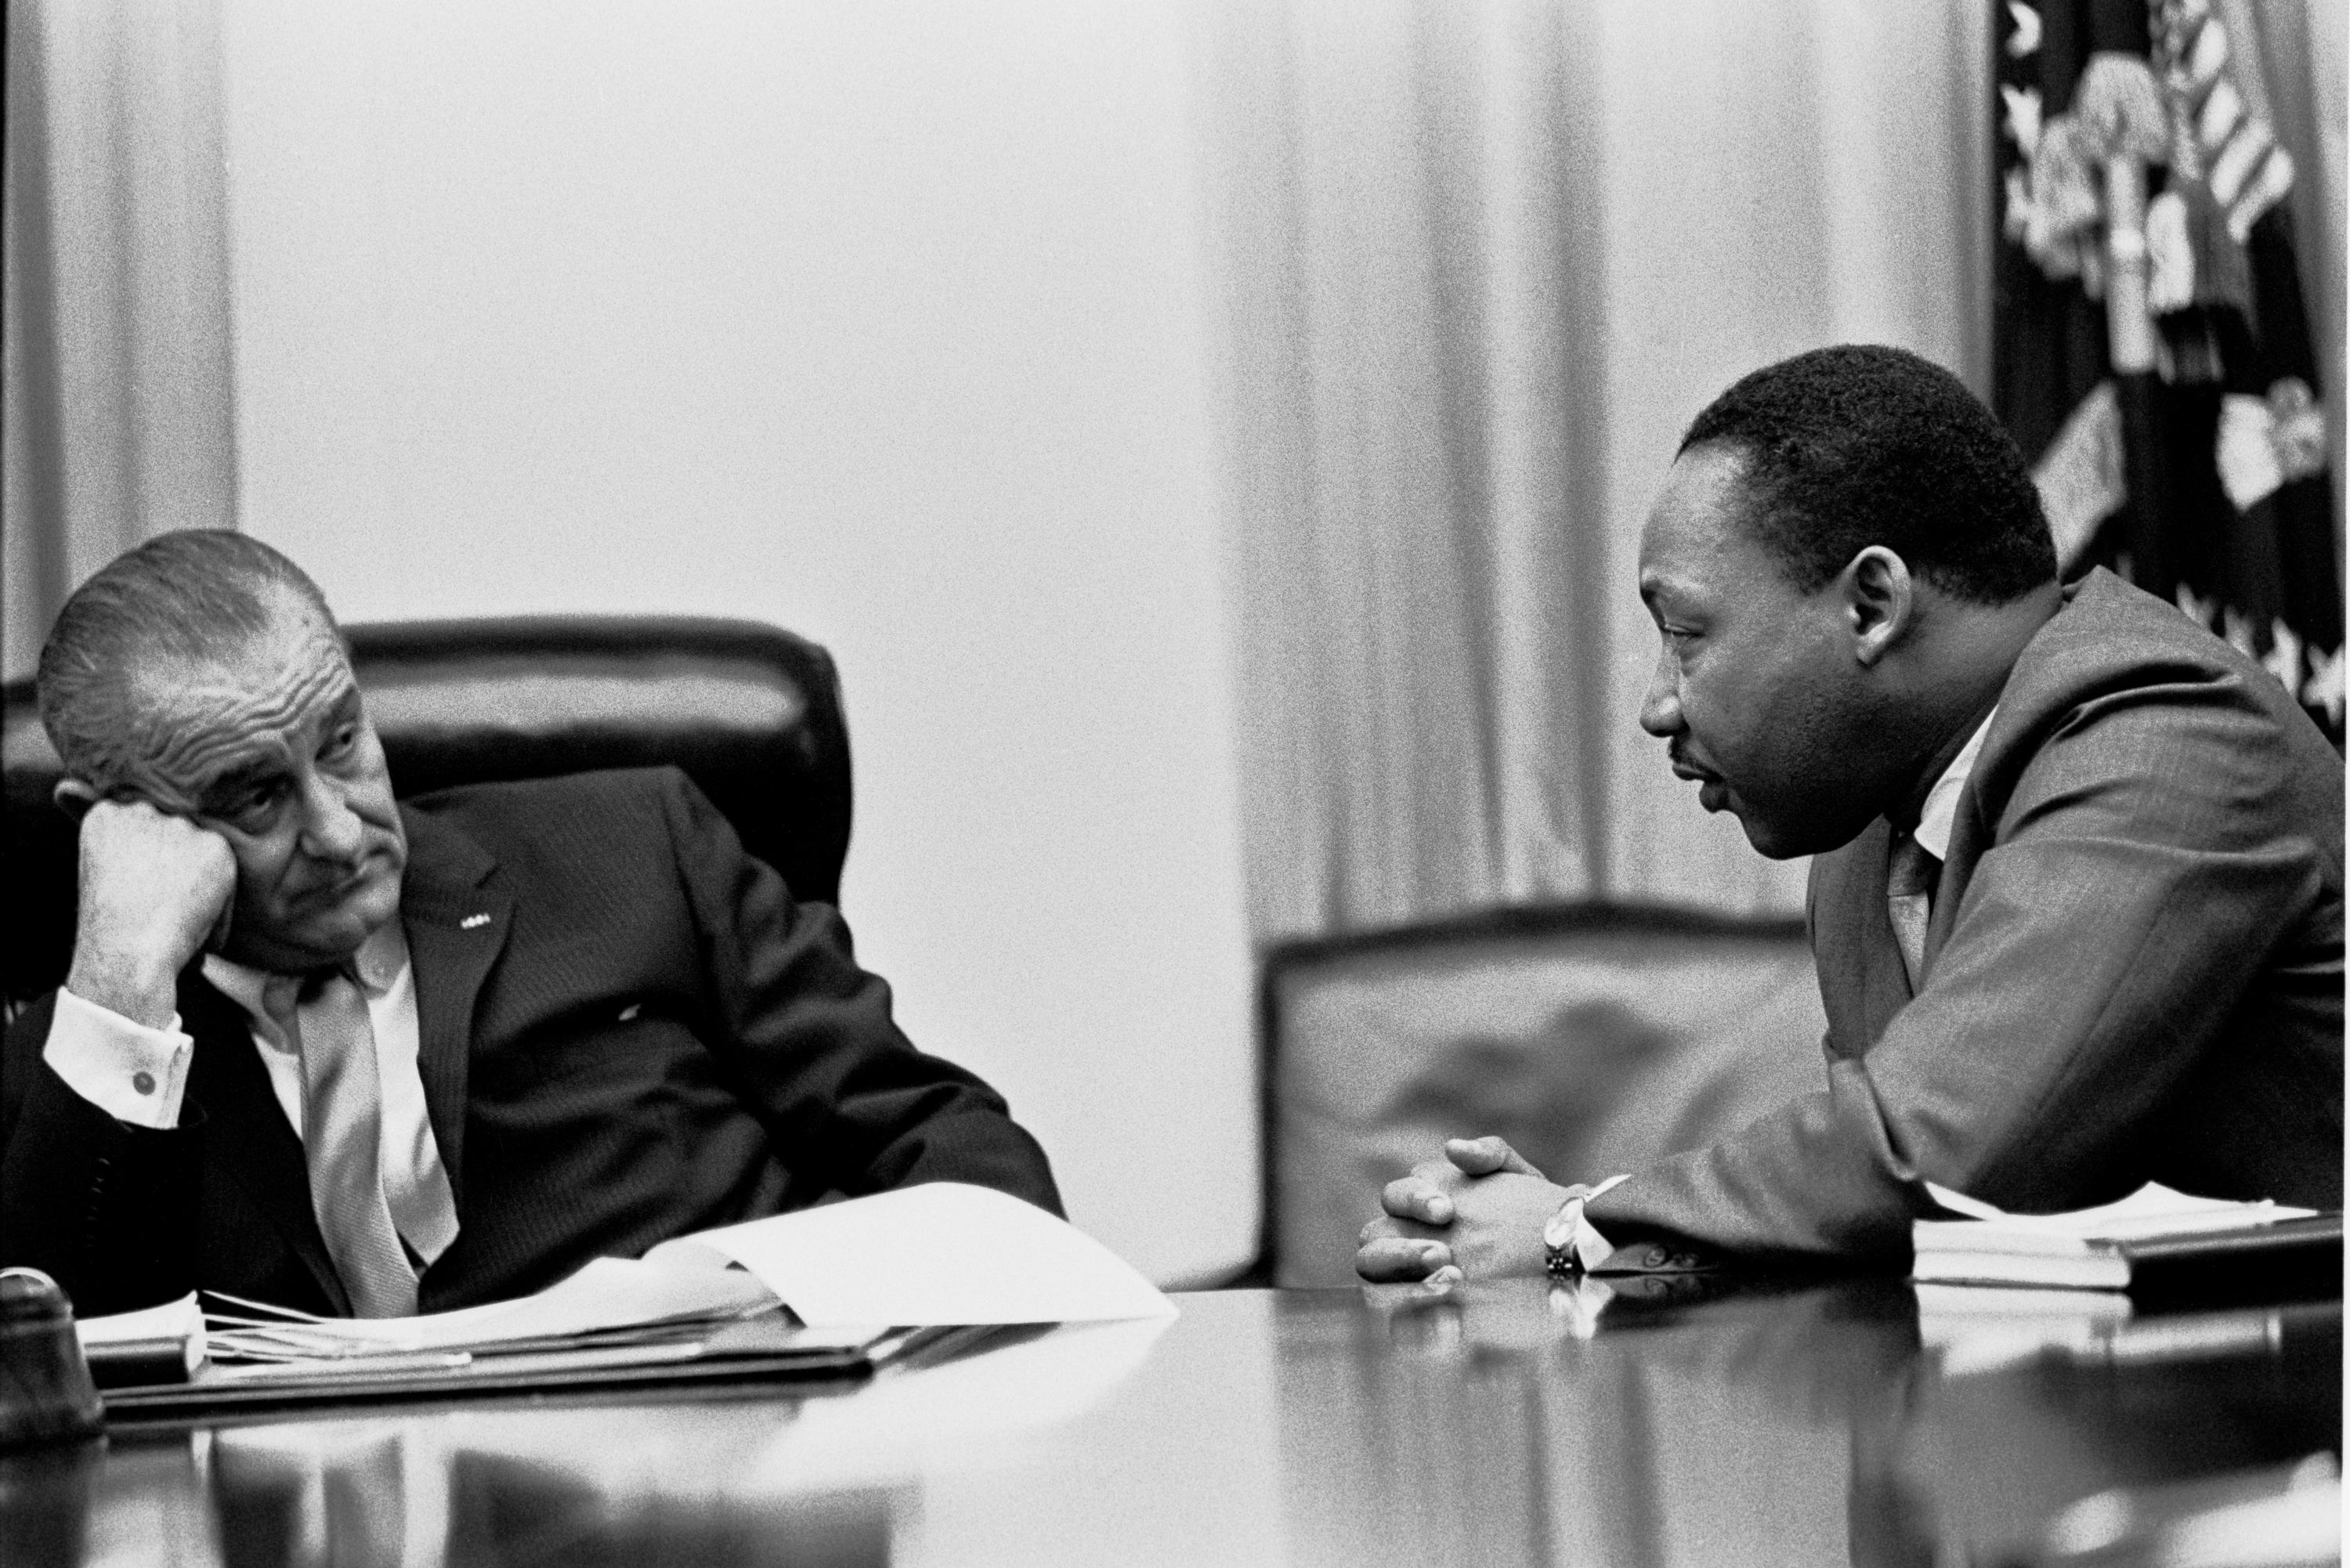 Can Serving Leaders Connect Like Dr. King?